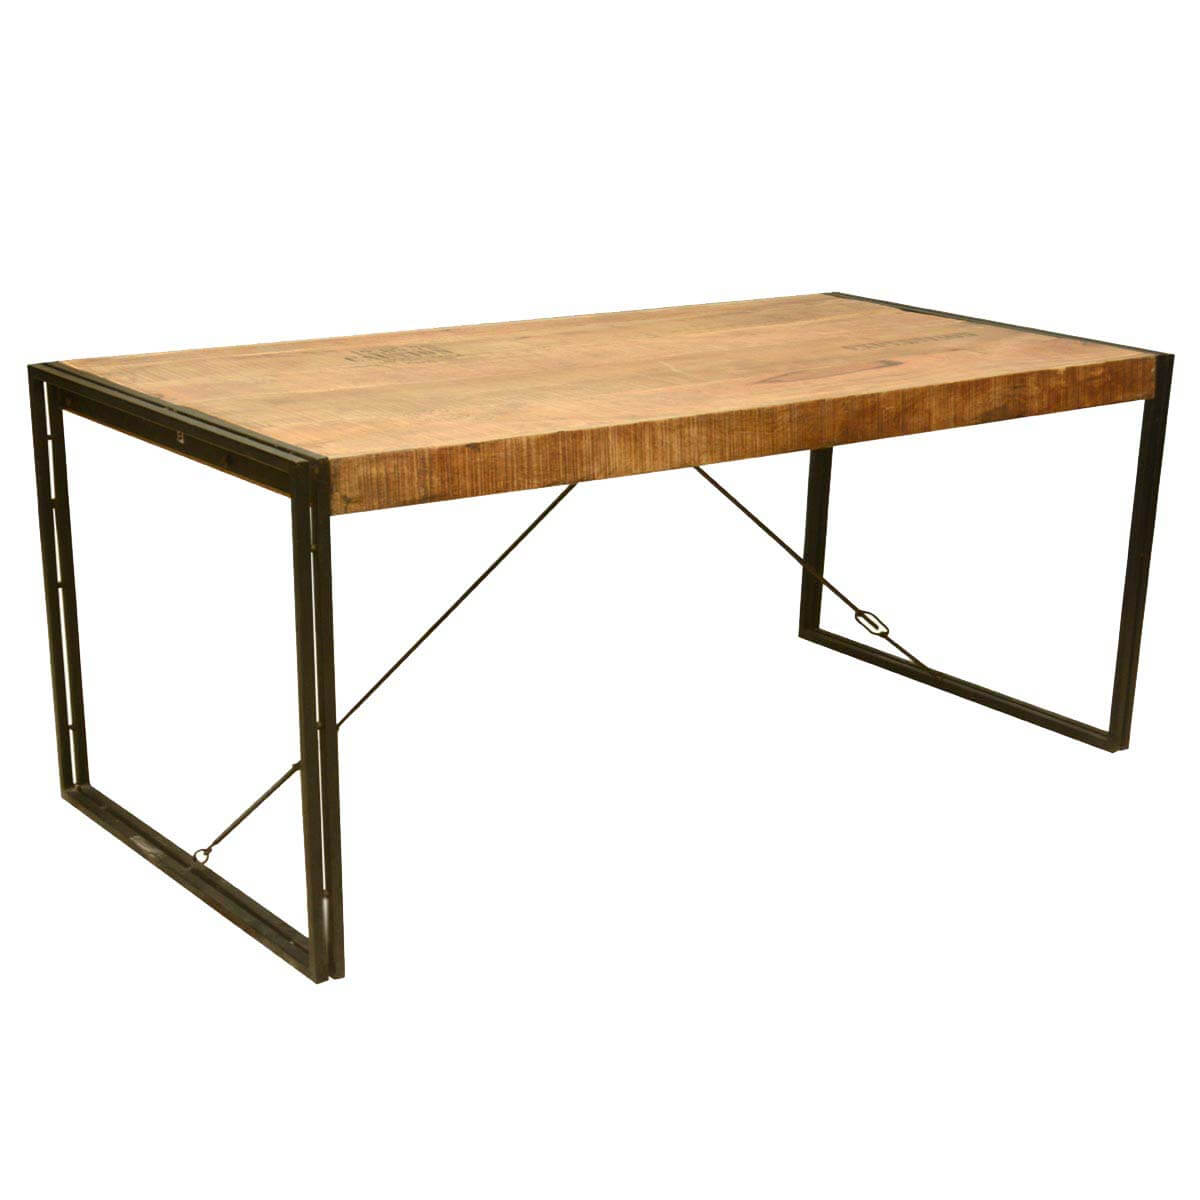 Large rustic industrial style mango wood and iron dining table for Large dining table